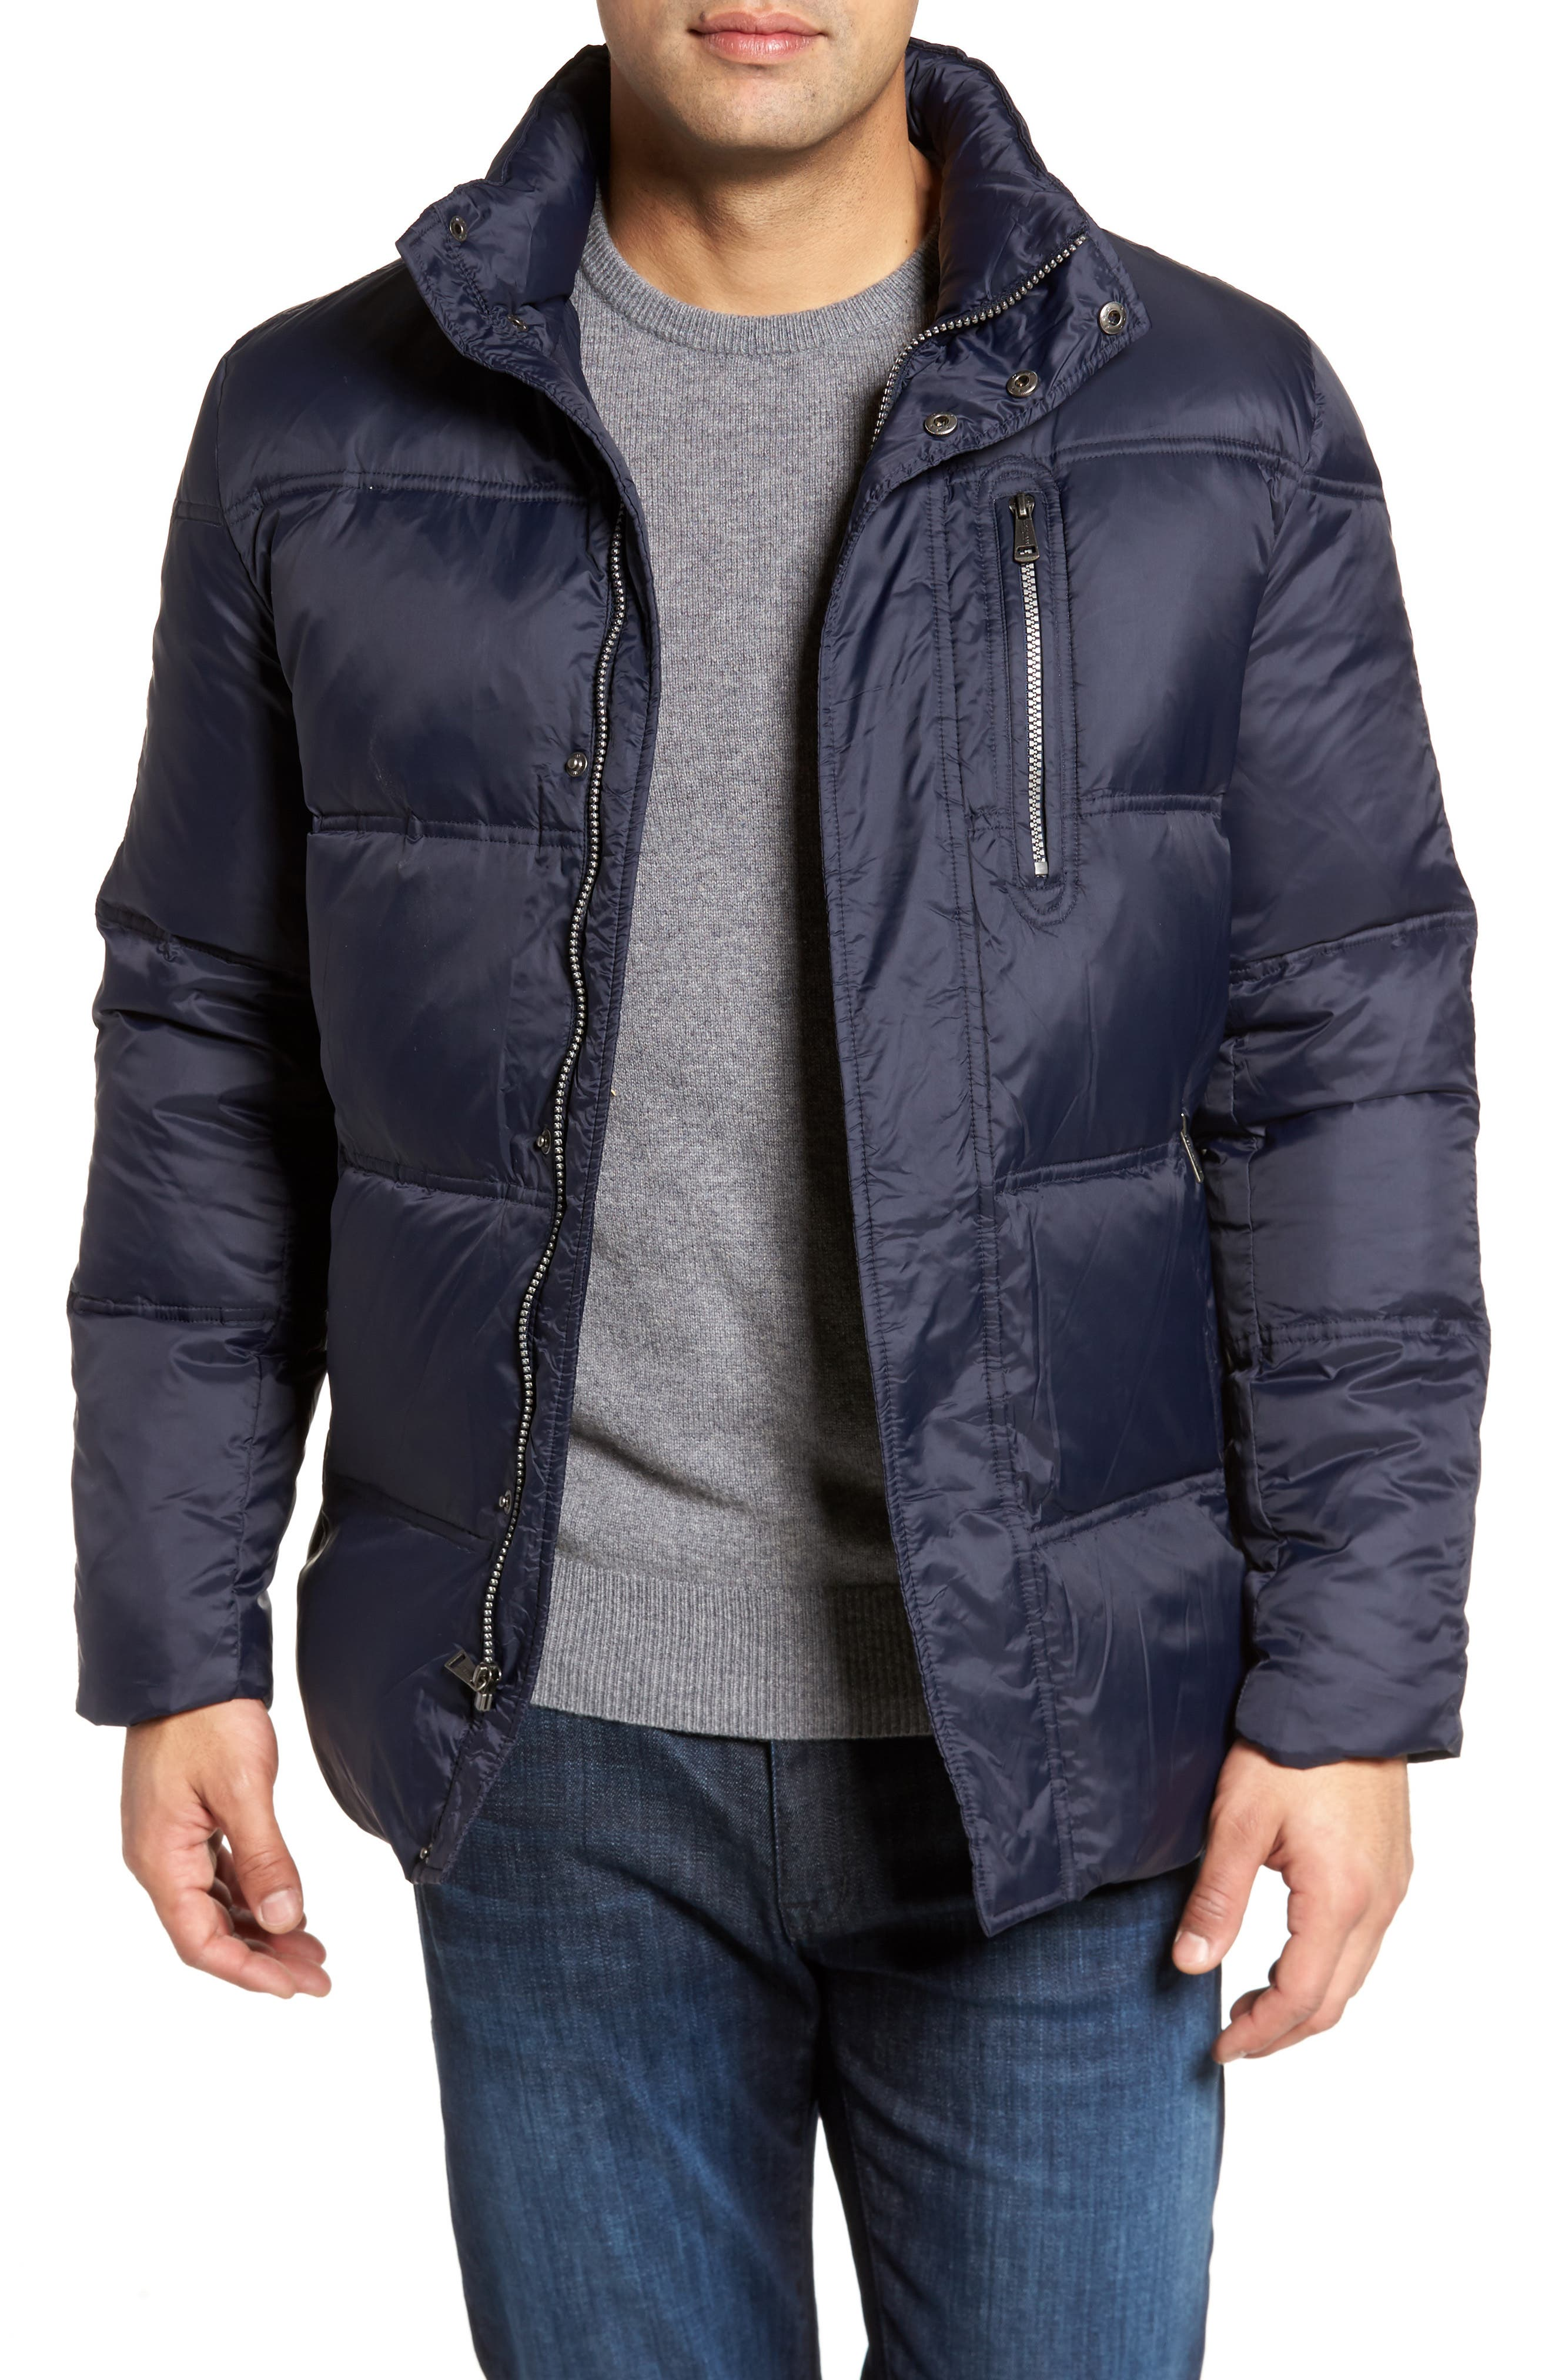 Quilted Jacket with Convertible Neck Pillow,                             Main thumbnail 1, color,                             NAVY